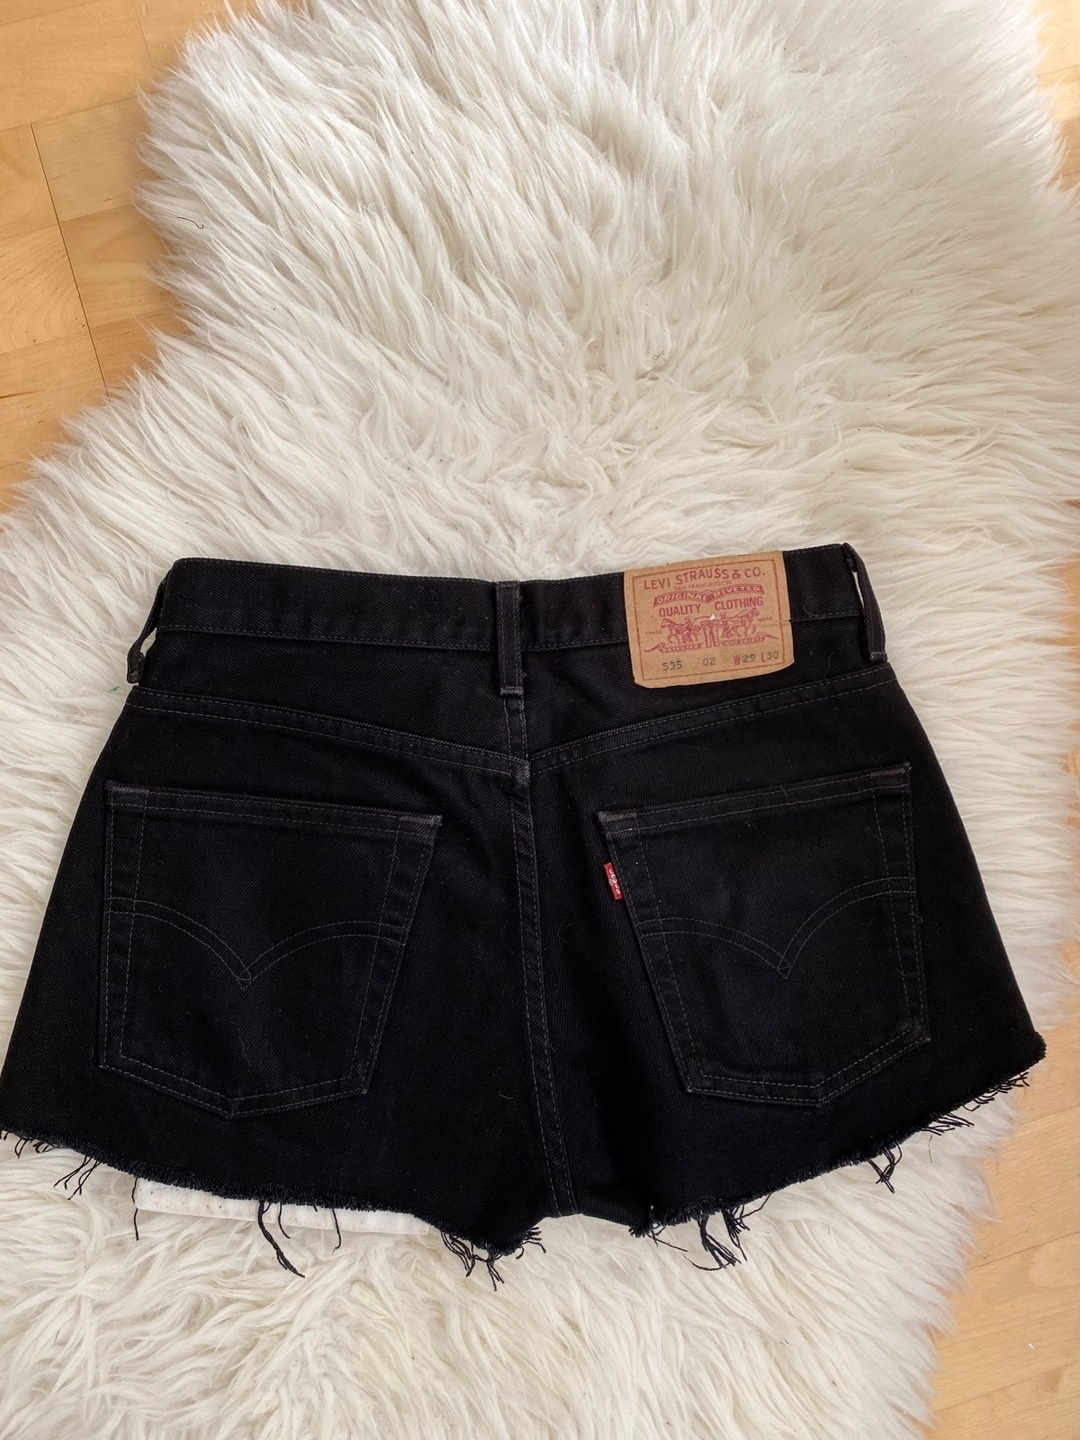 Damen shorts - LEVI'S photo 3